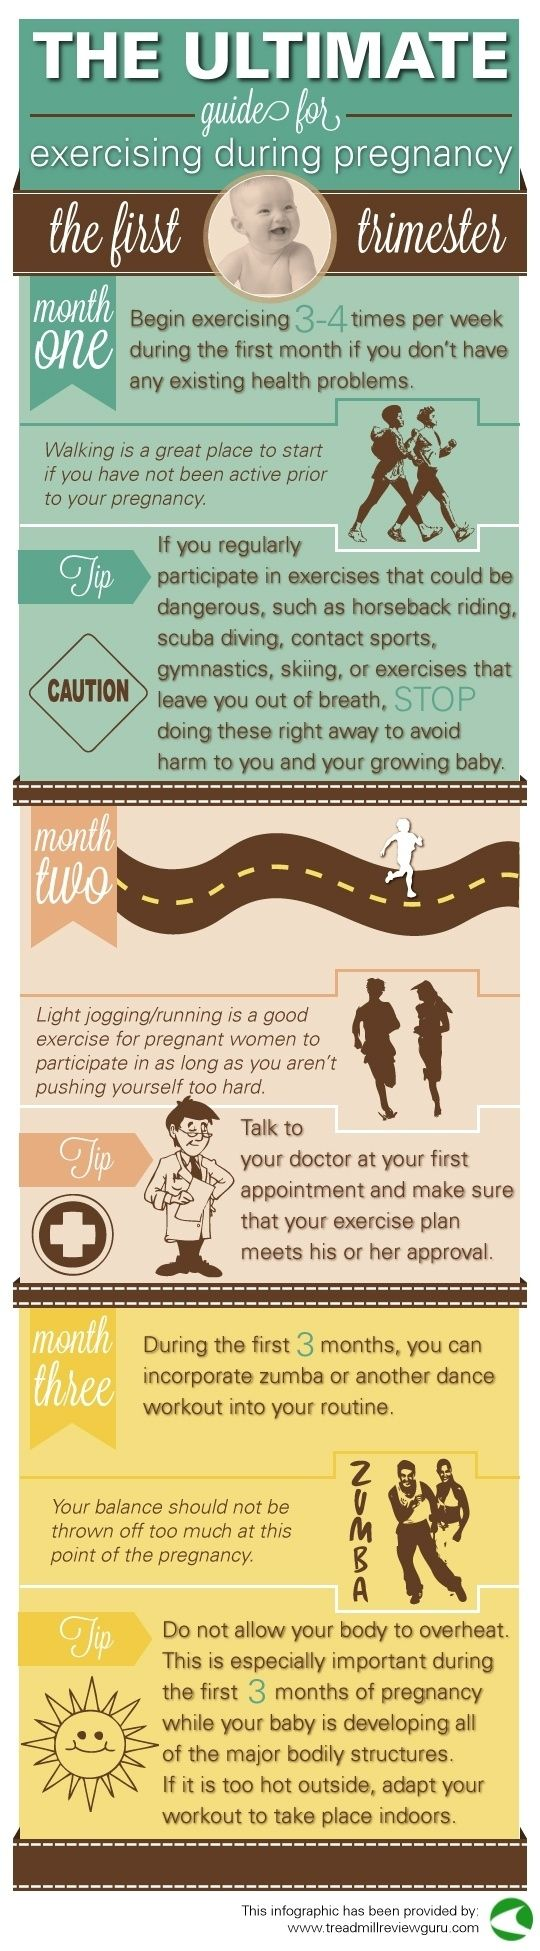 Use this chart to gauge how much exercise is appropriate during pregnancy.